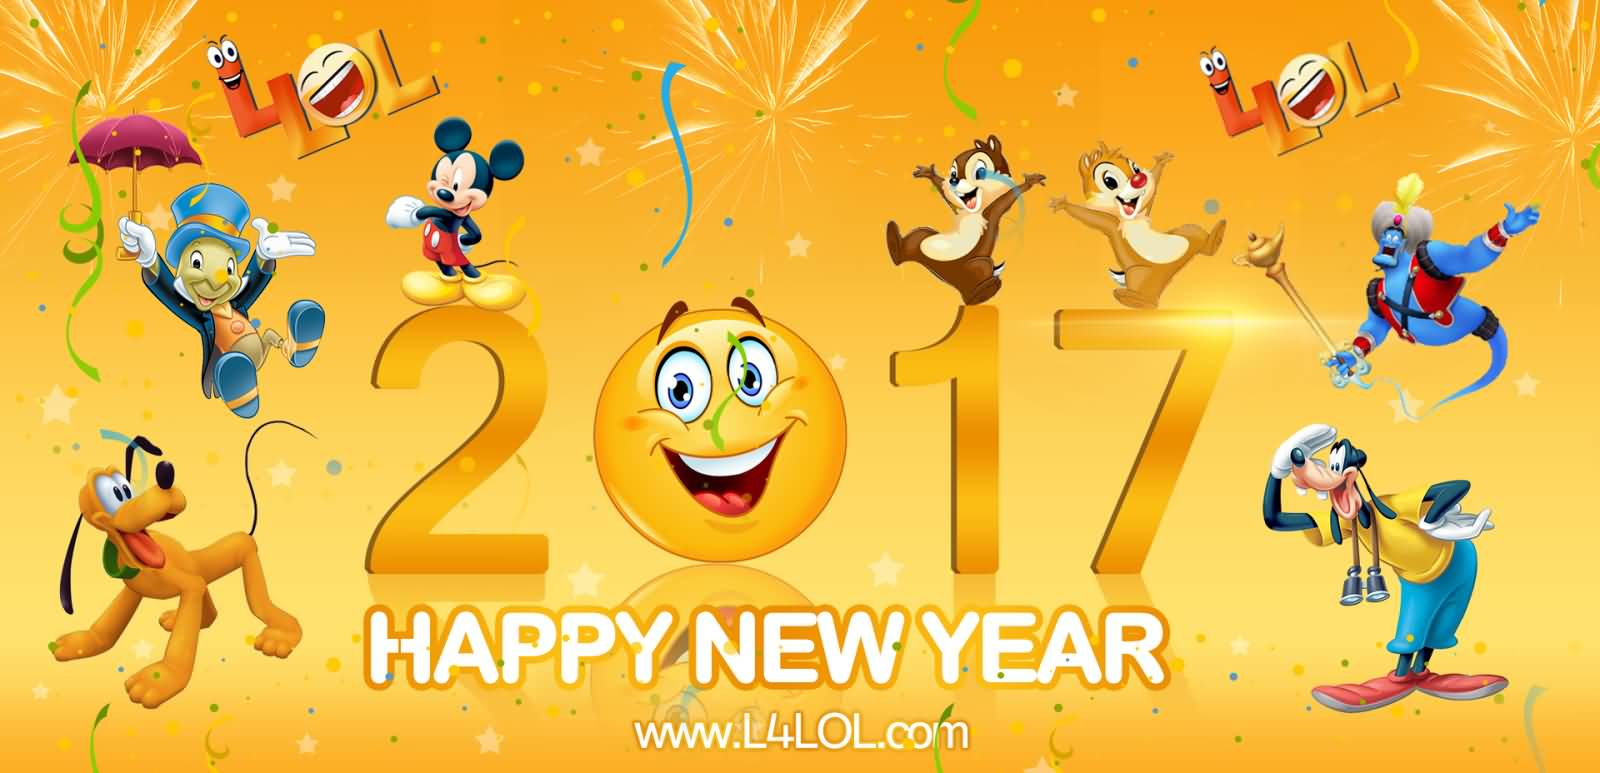 happy new year 2017 wishes from disney